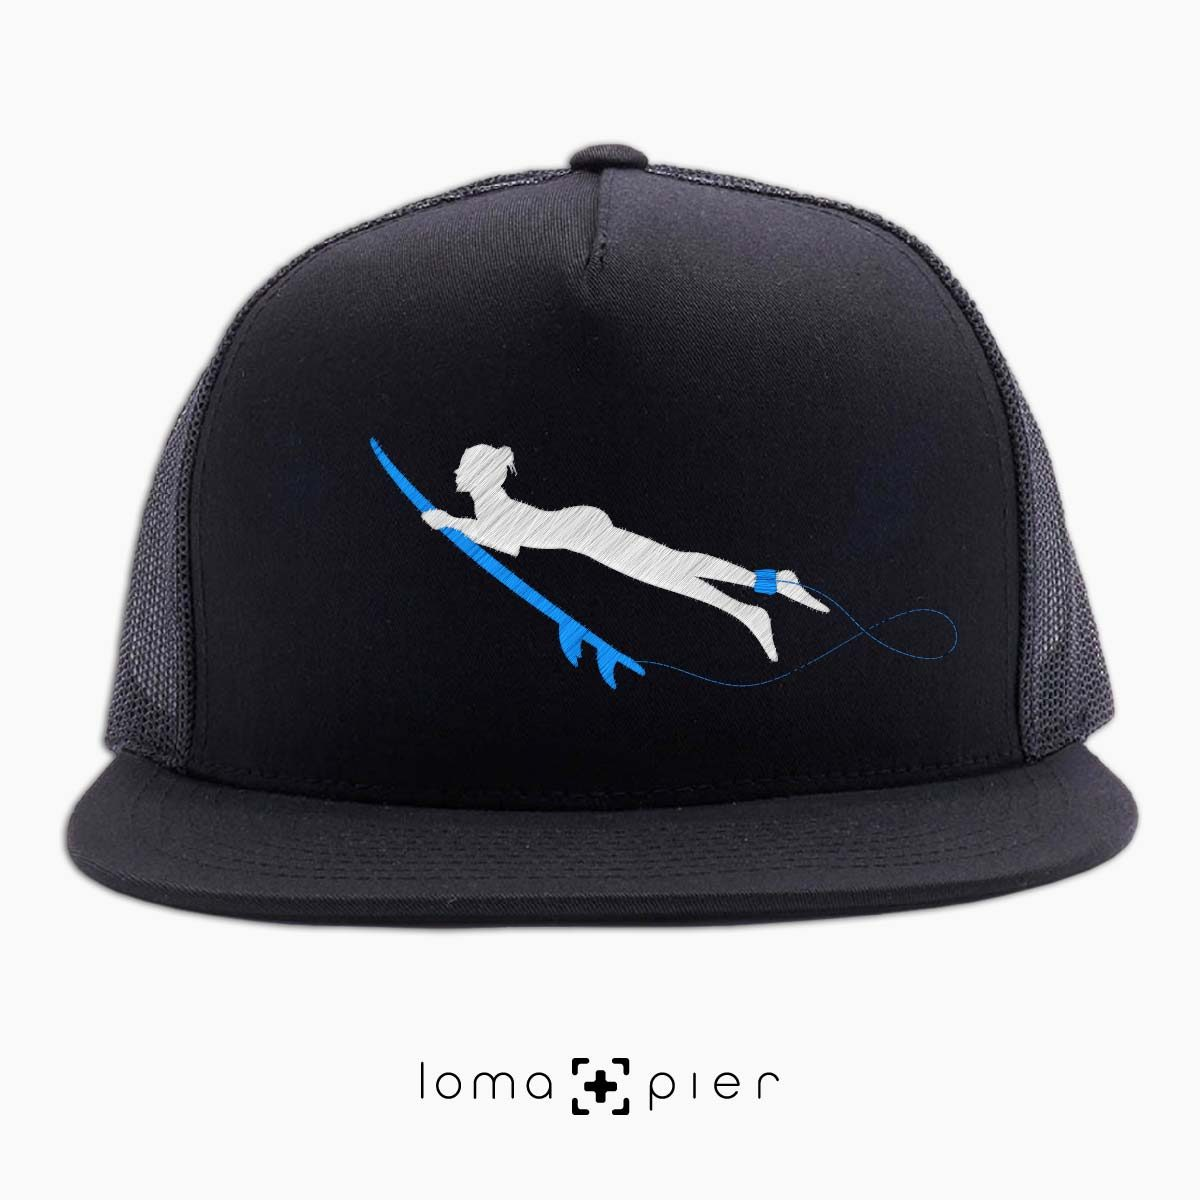 SURFING NAKED nude beach netback hat in black by loma+pier hat store